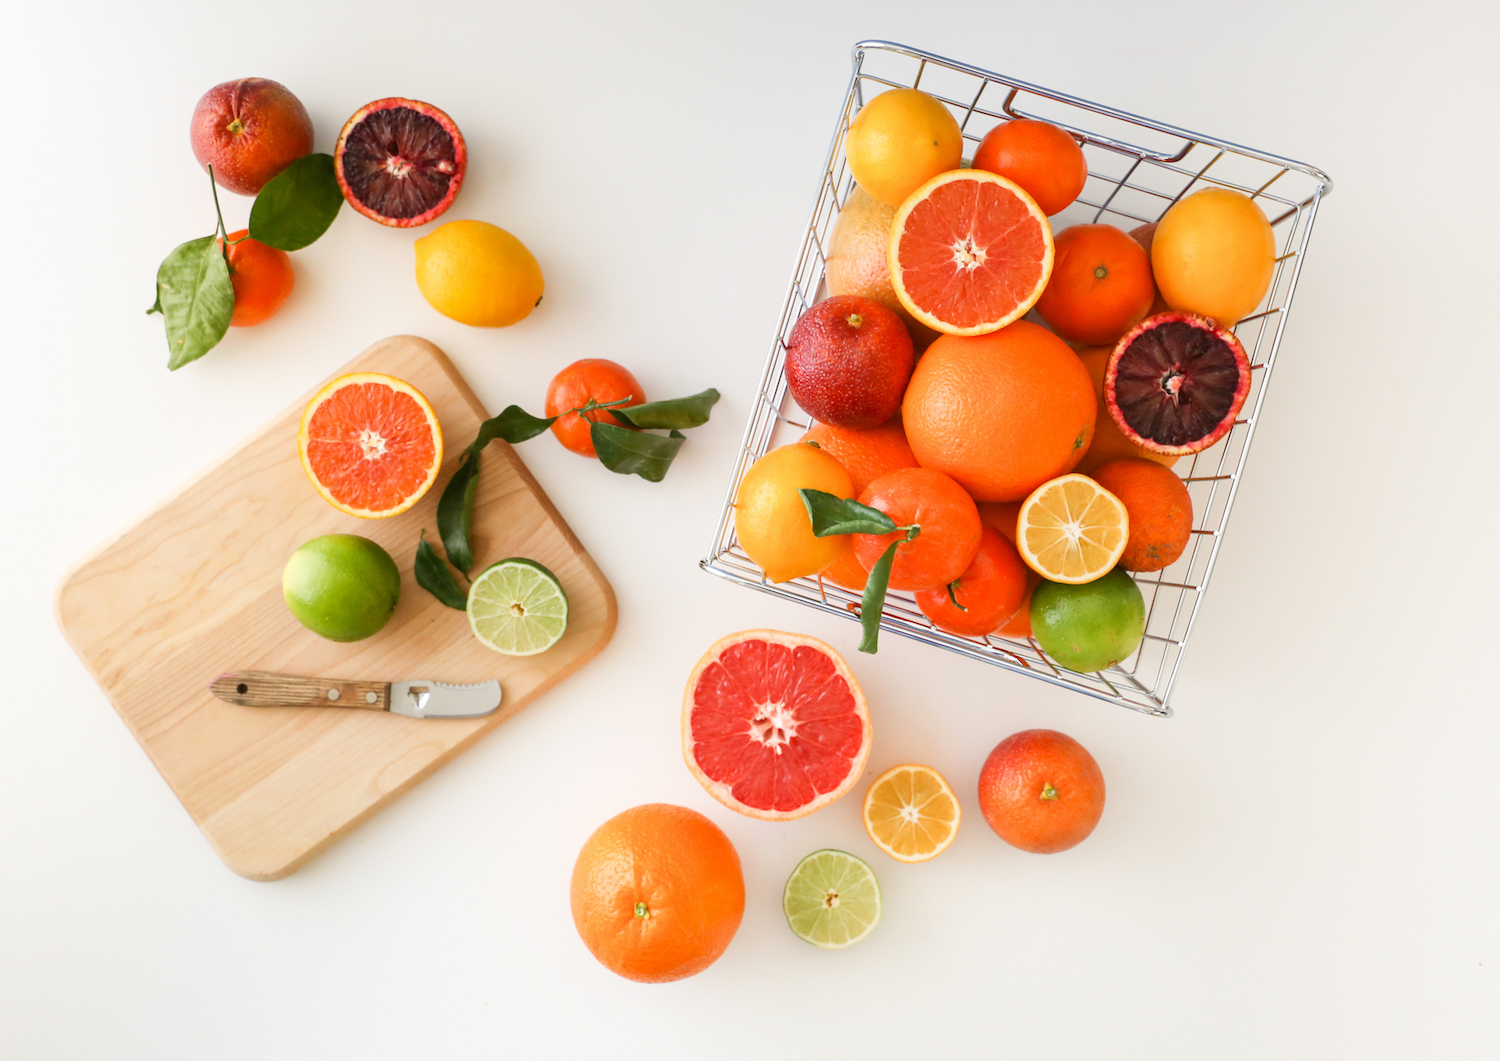 3 Ways to Preserve Your Favorite Winter Citrus